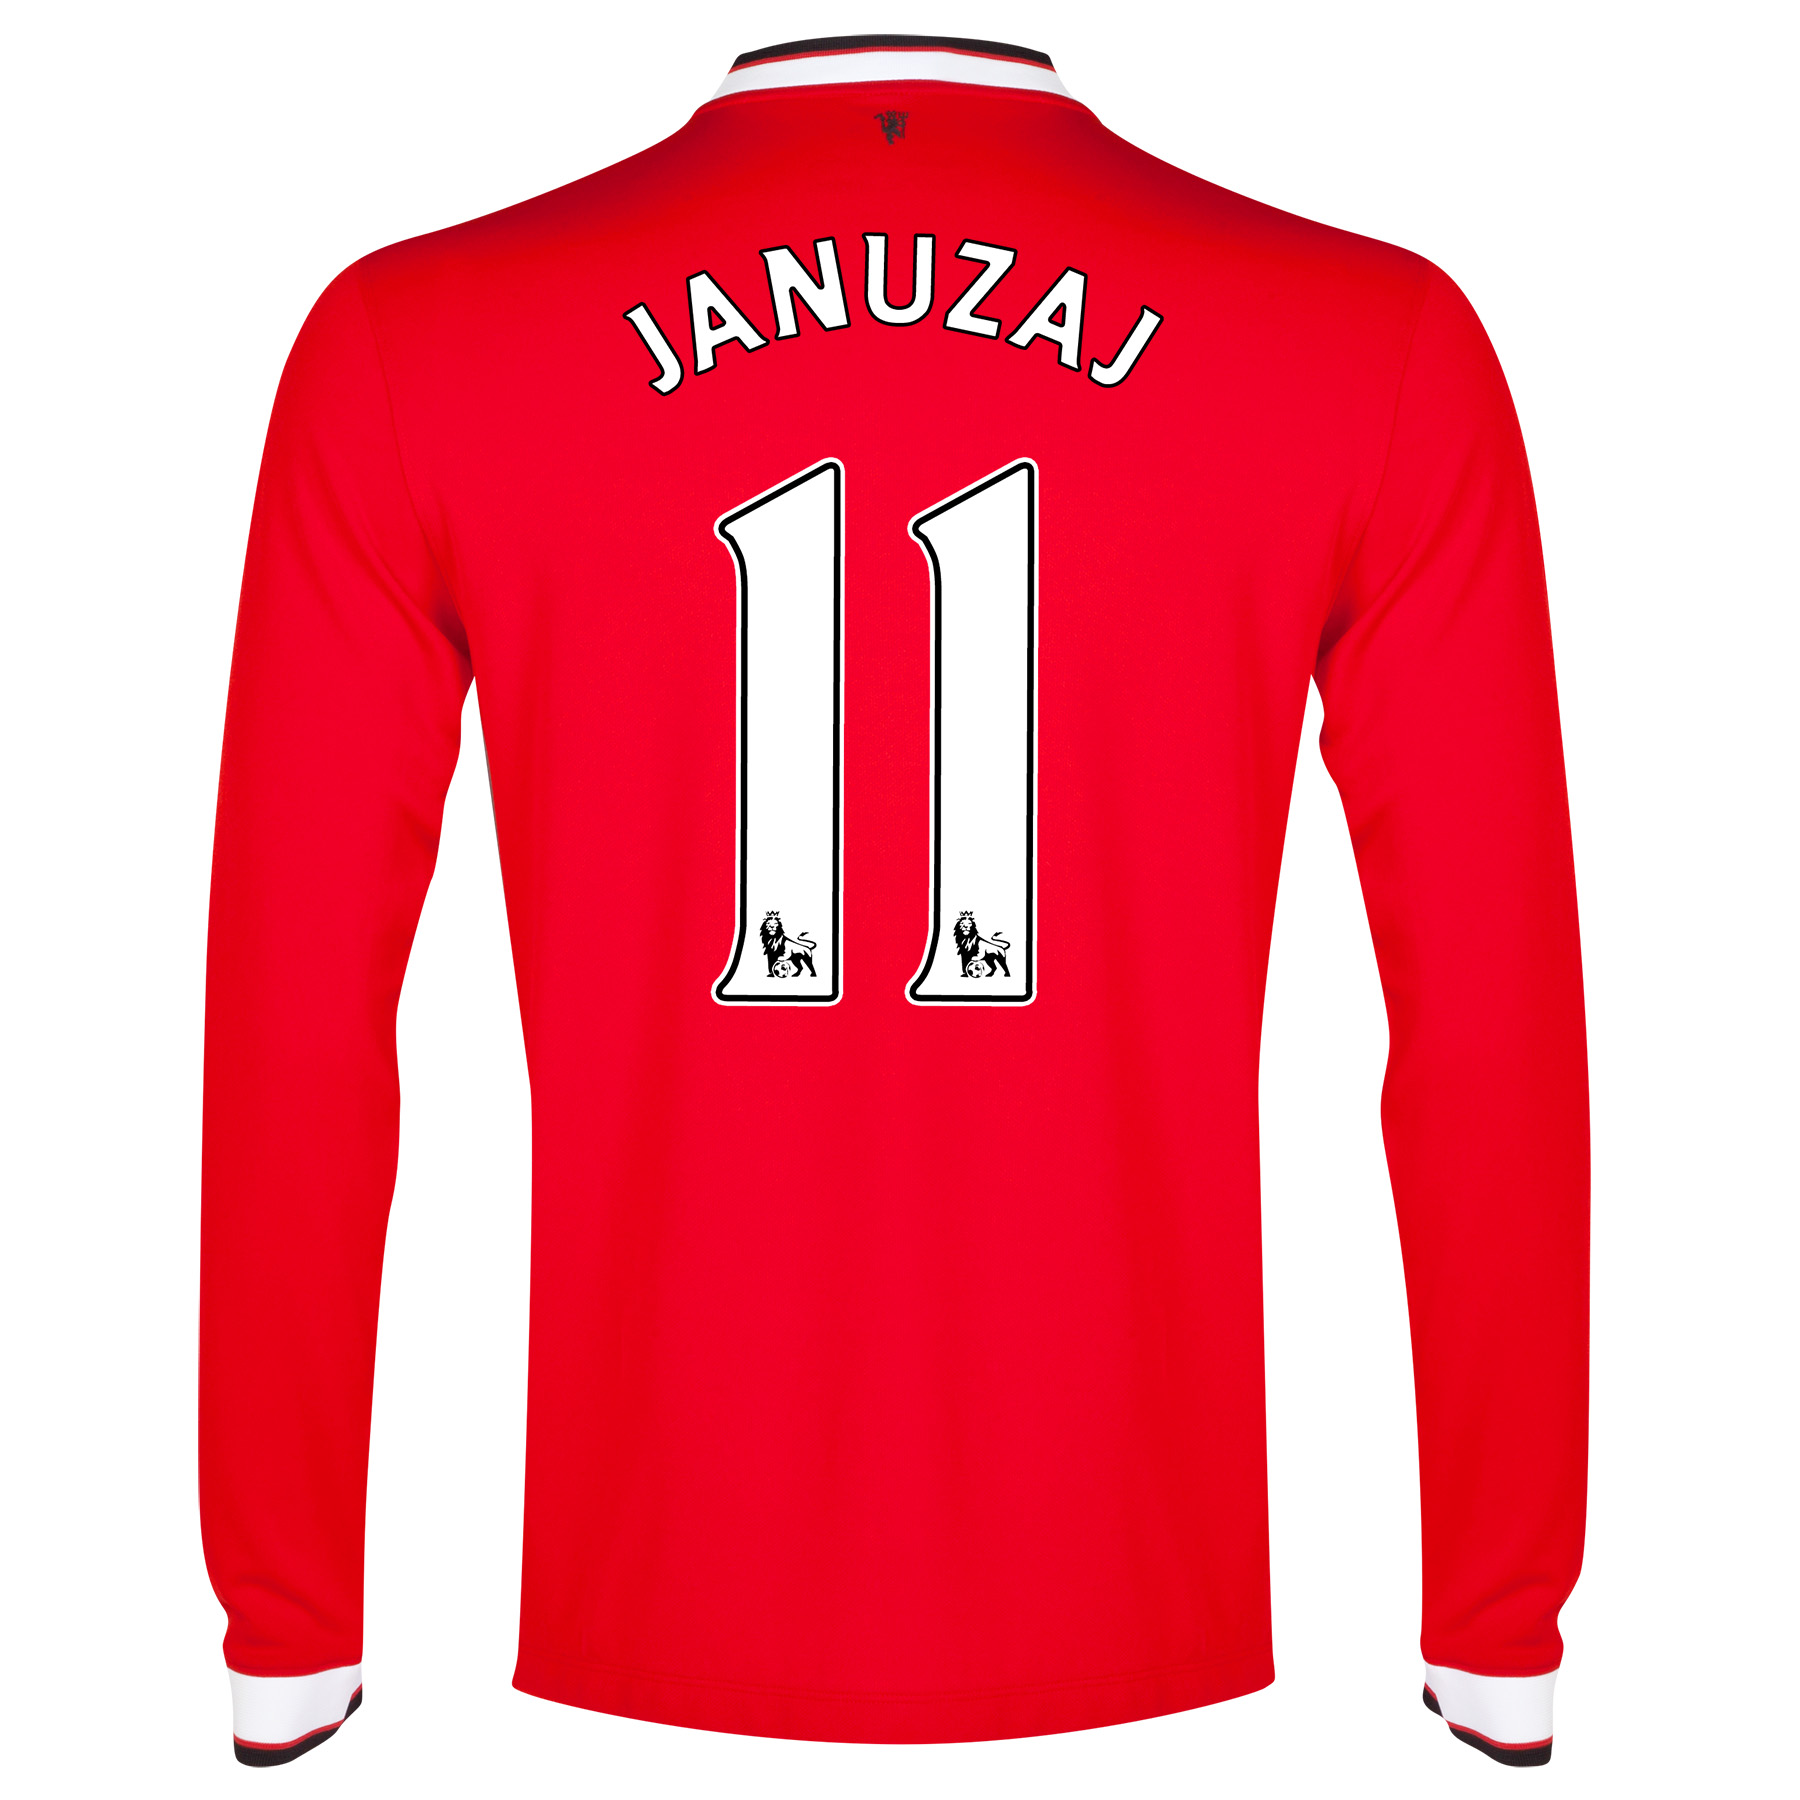 Manchester United Home Shirt 2014/15 - Long Sleeve - Kids Red with Januzaj 44 printing